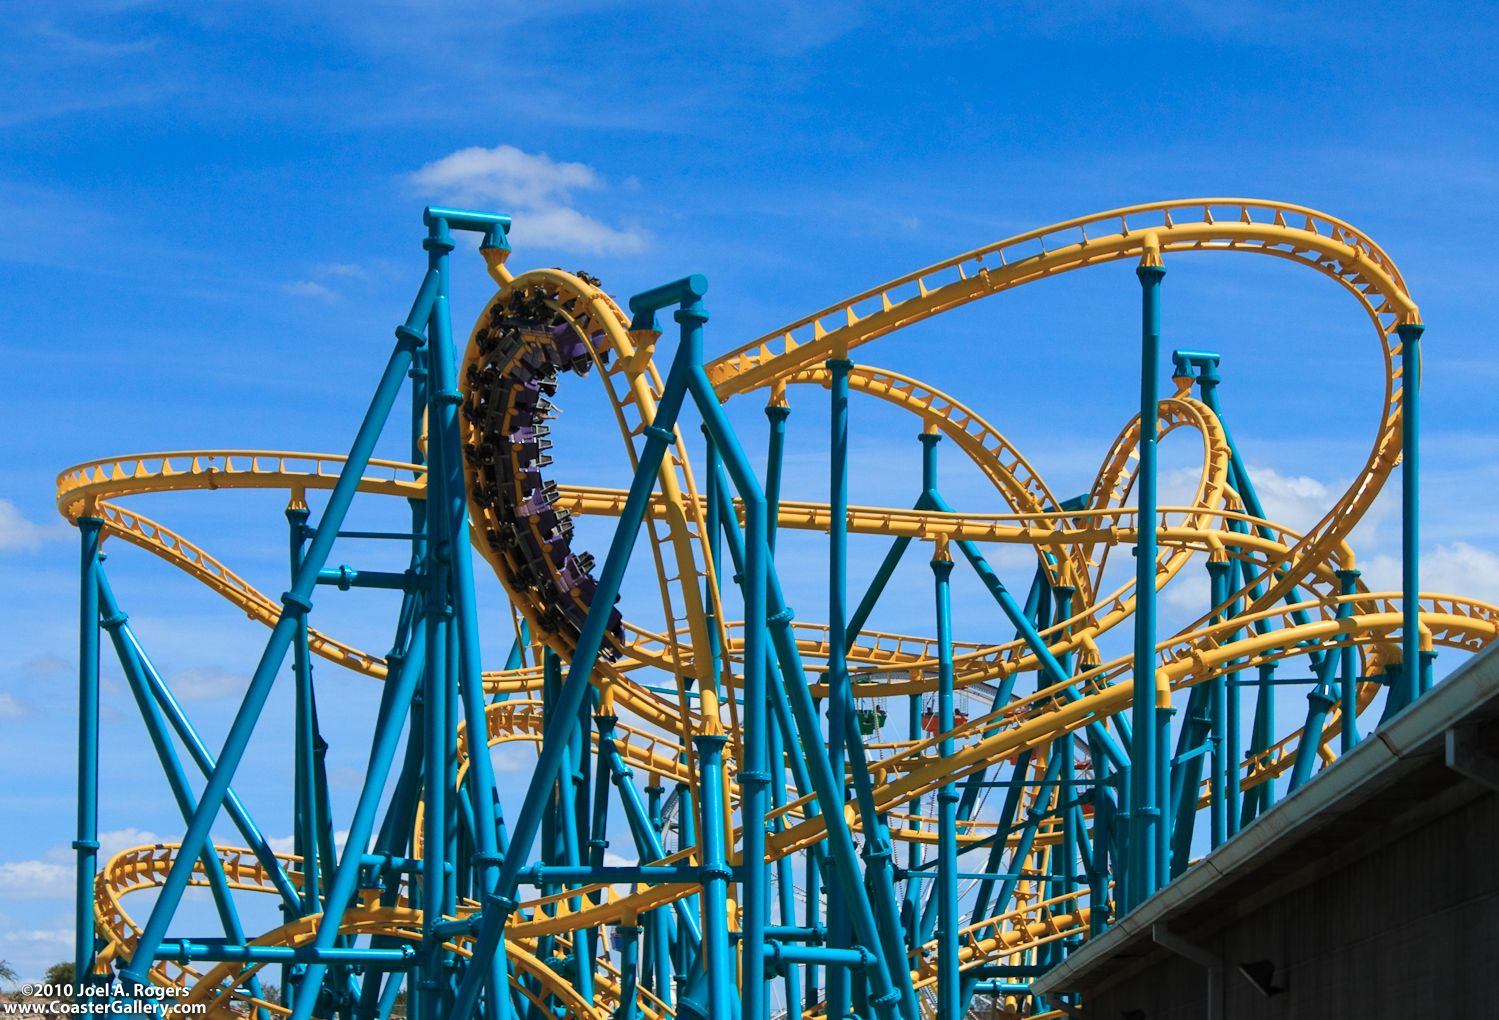 Visit Six Flags Fiesta Texas In San Antonio For Thrilling Coasters Like The Poltergeist A Spin O In 2020 Amusement Park Rides Texas Attractions Six Flags Fiesta Texas